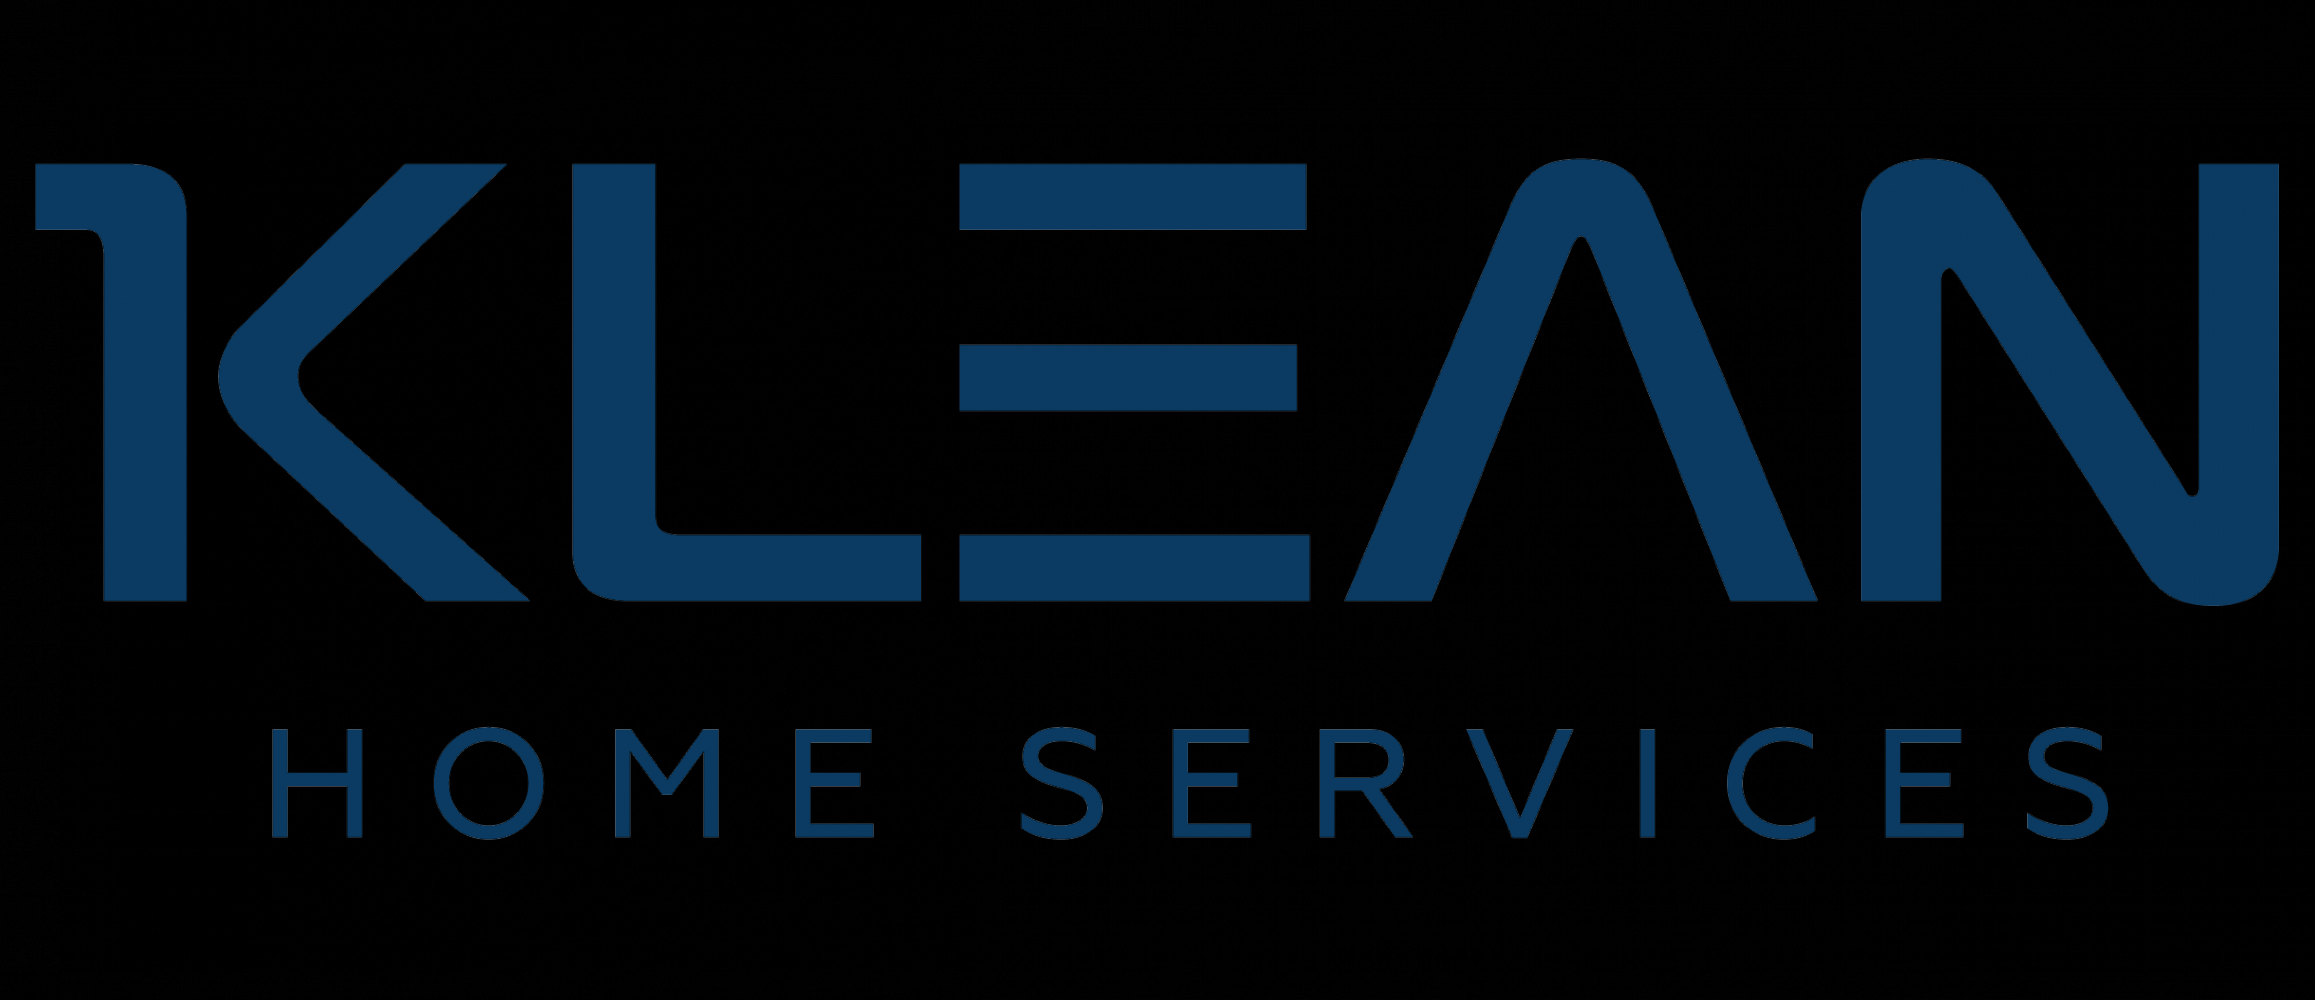 Фото Klean Home Services